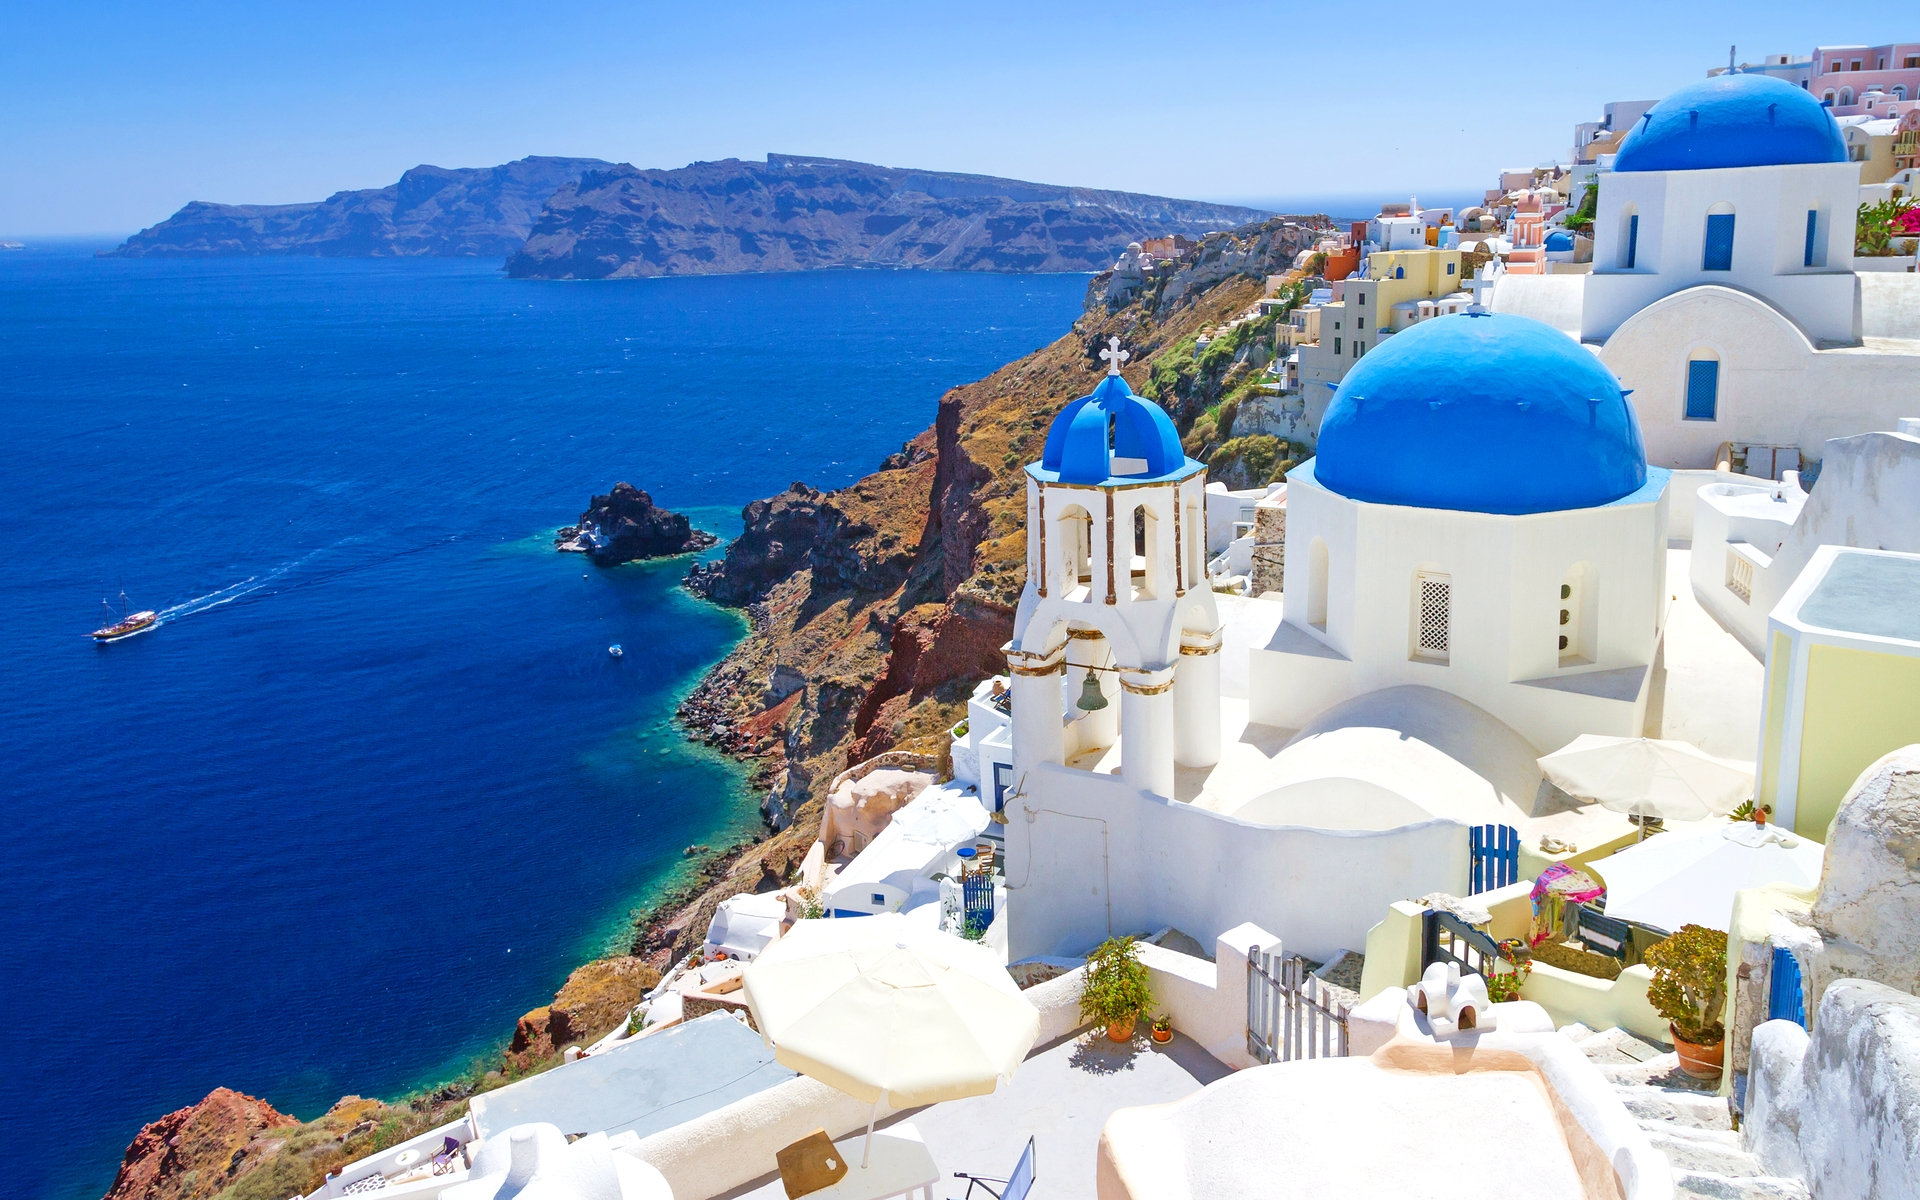 Santorini travel guide for first-time visitors